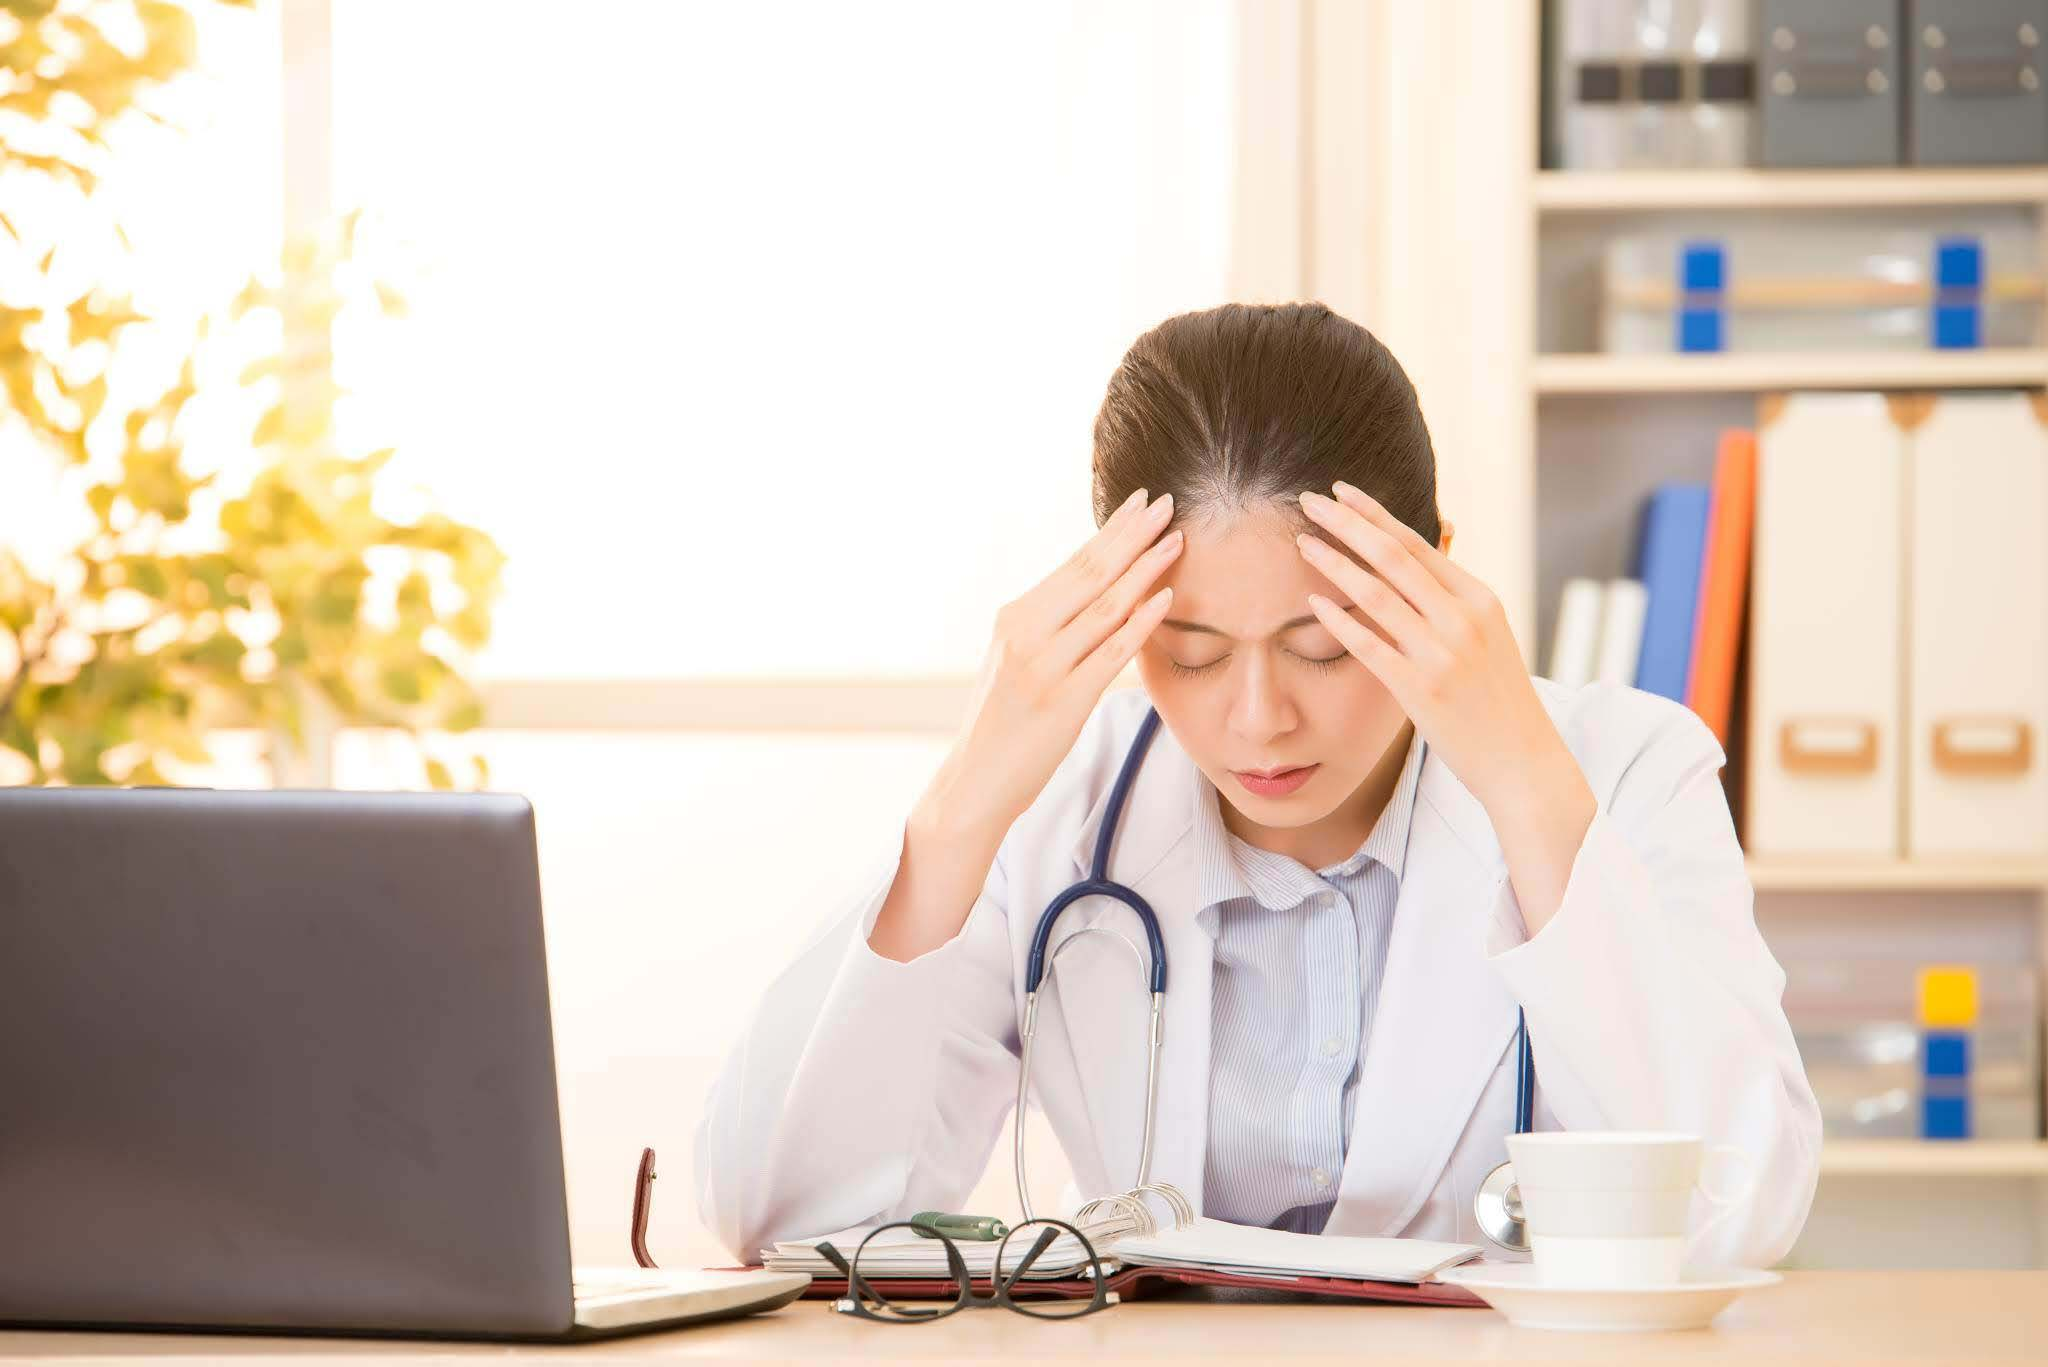 Allergist and Immunologists Burnout